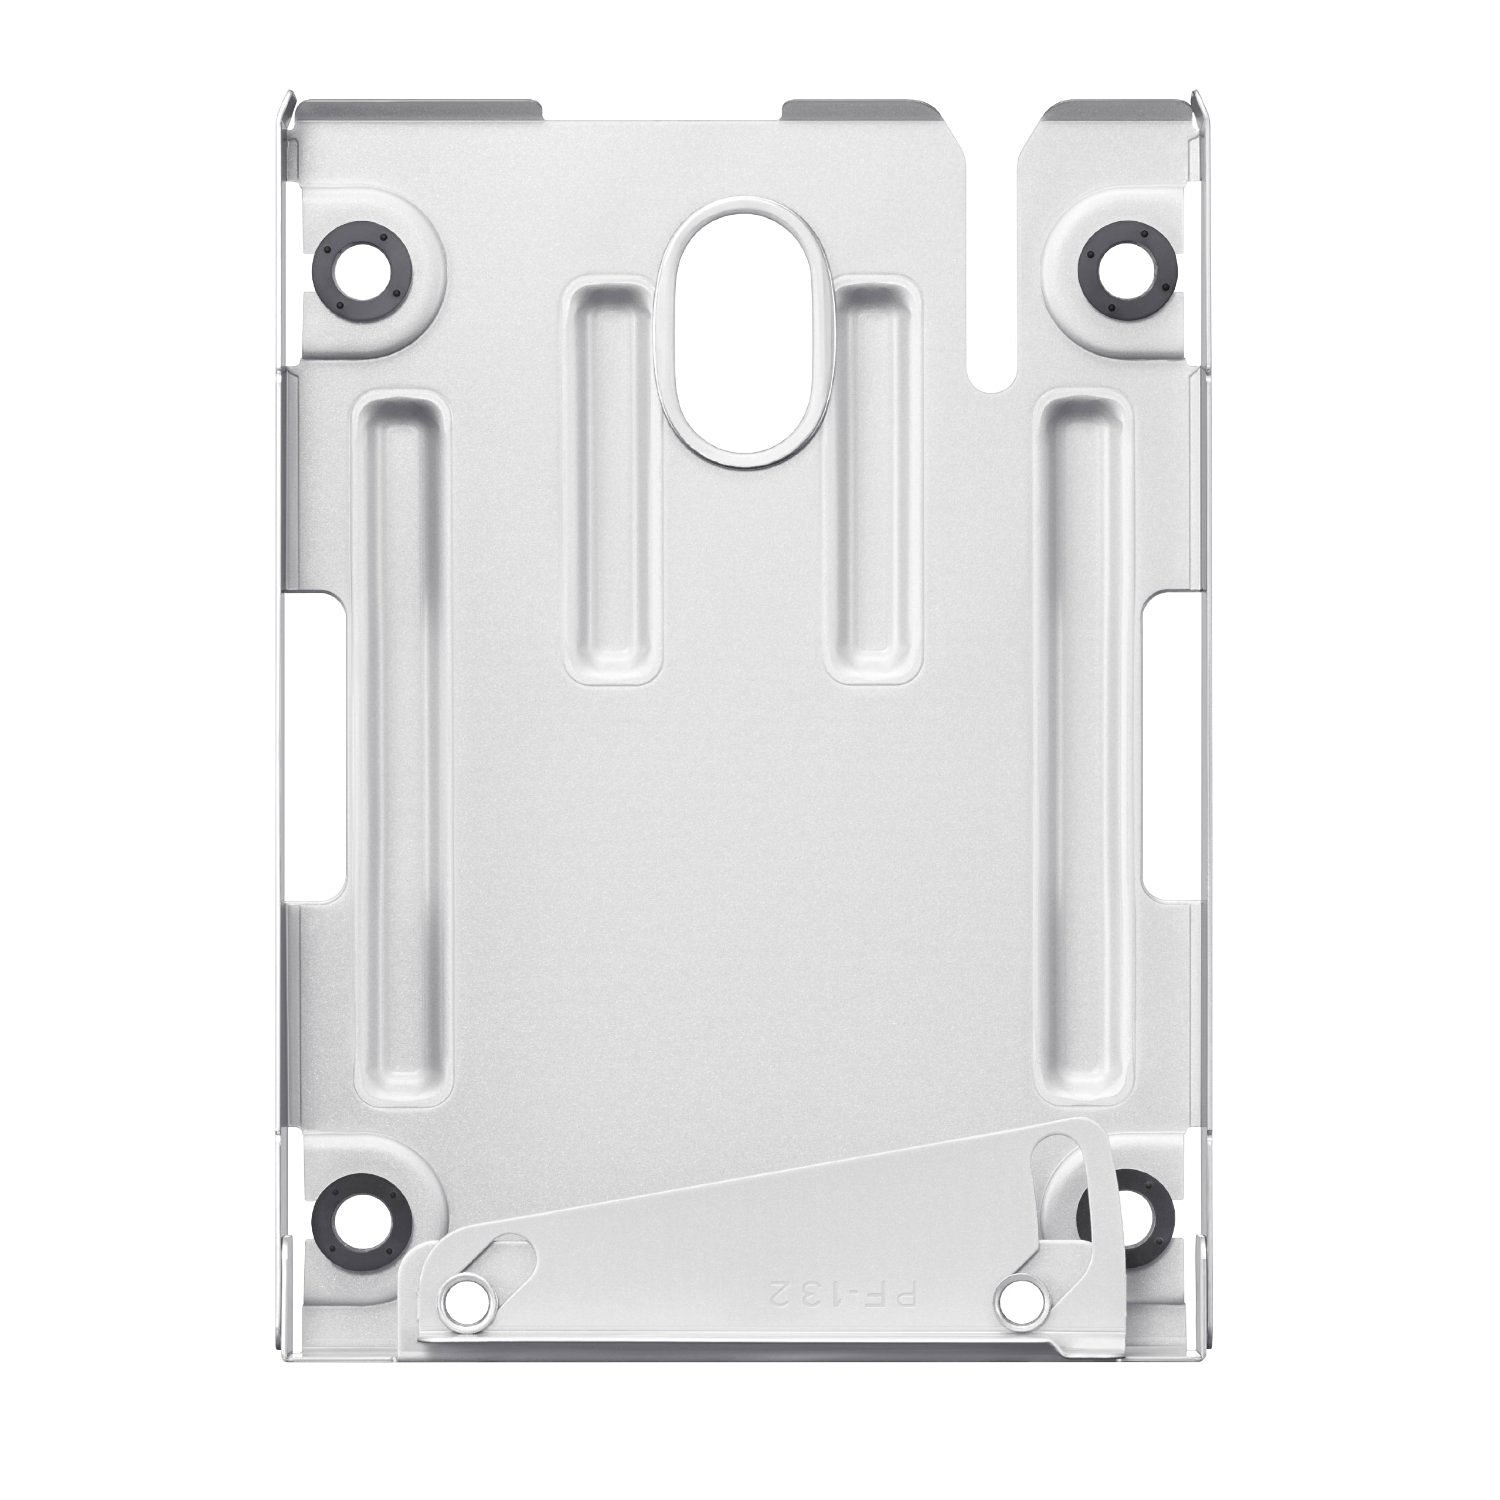 """SaiTech 2.5"""" Hard Disk Drive Mounting Bracket Enclosure/Caddy for PS3 Super Slim Consoles Compatible With PlayStation 3 system (CECH-400x series)"""